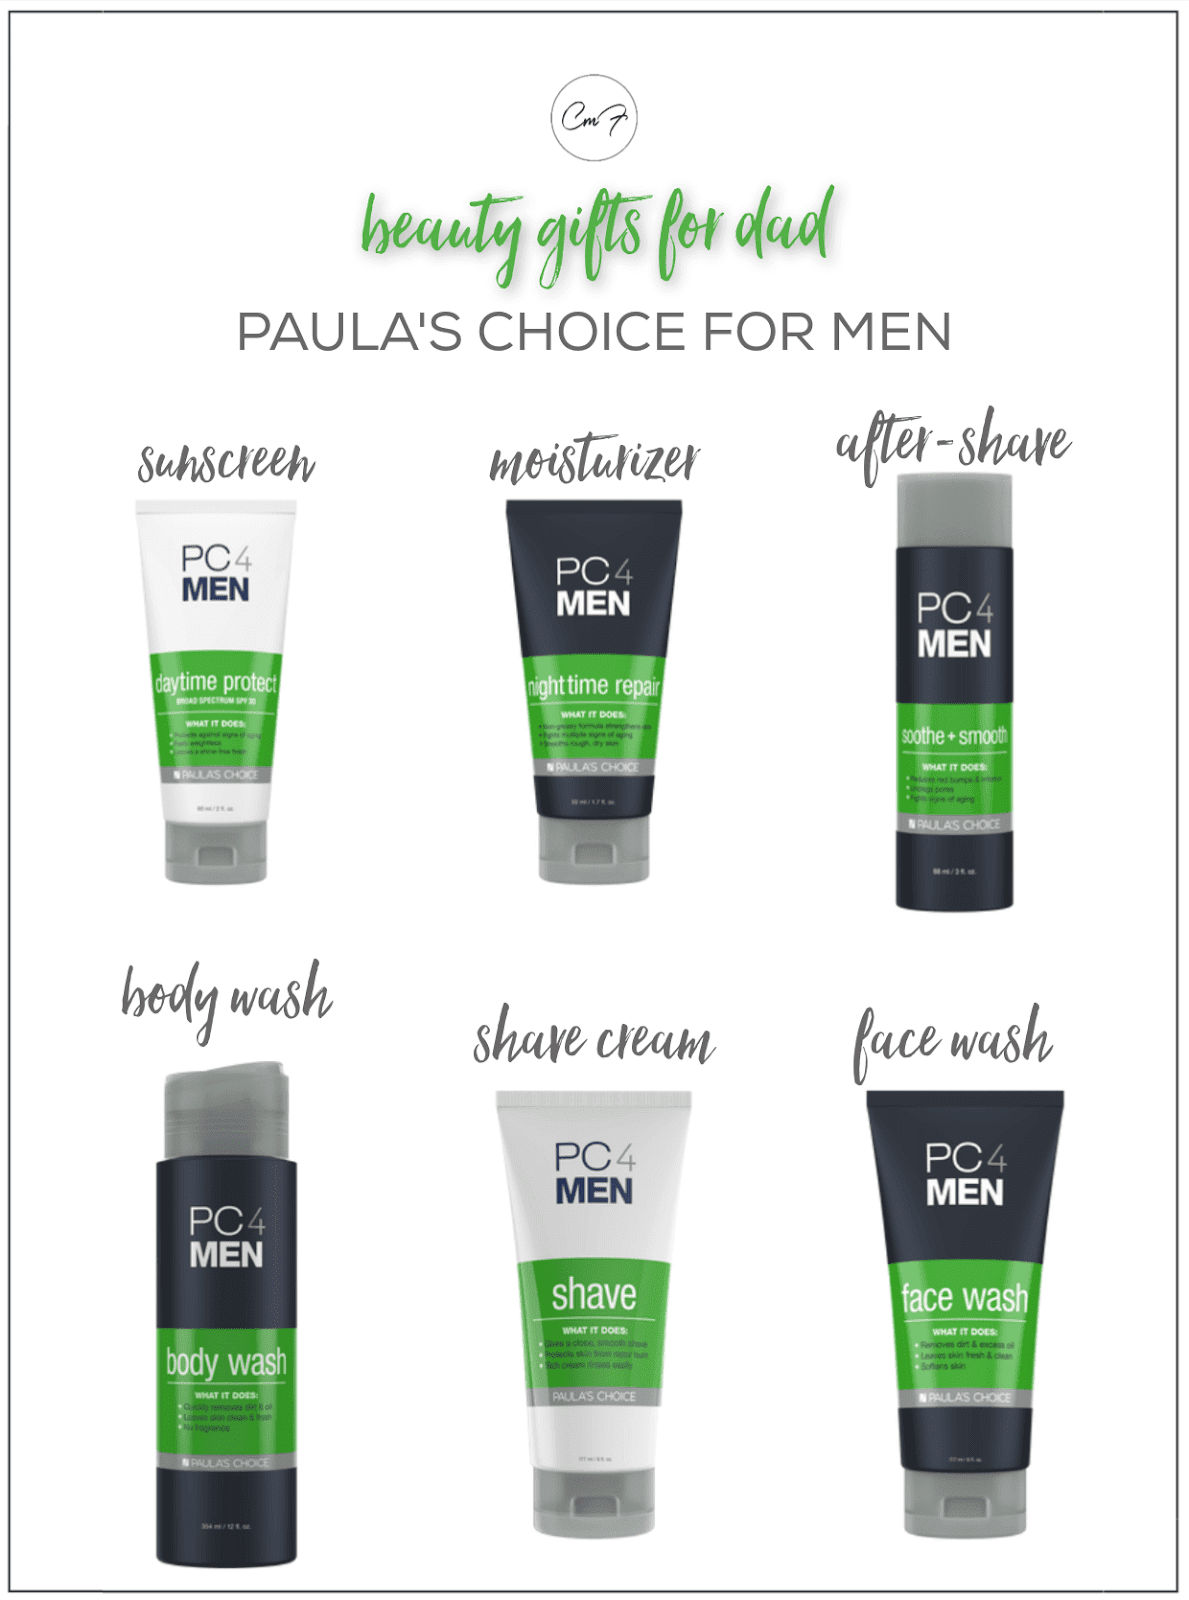 paula's choice men's line